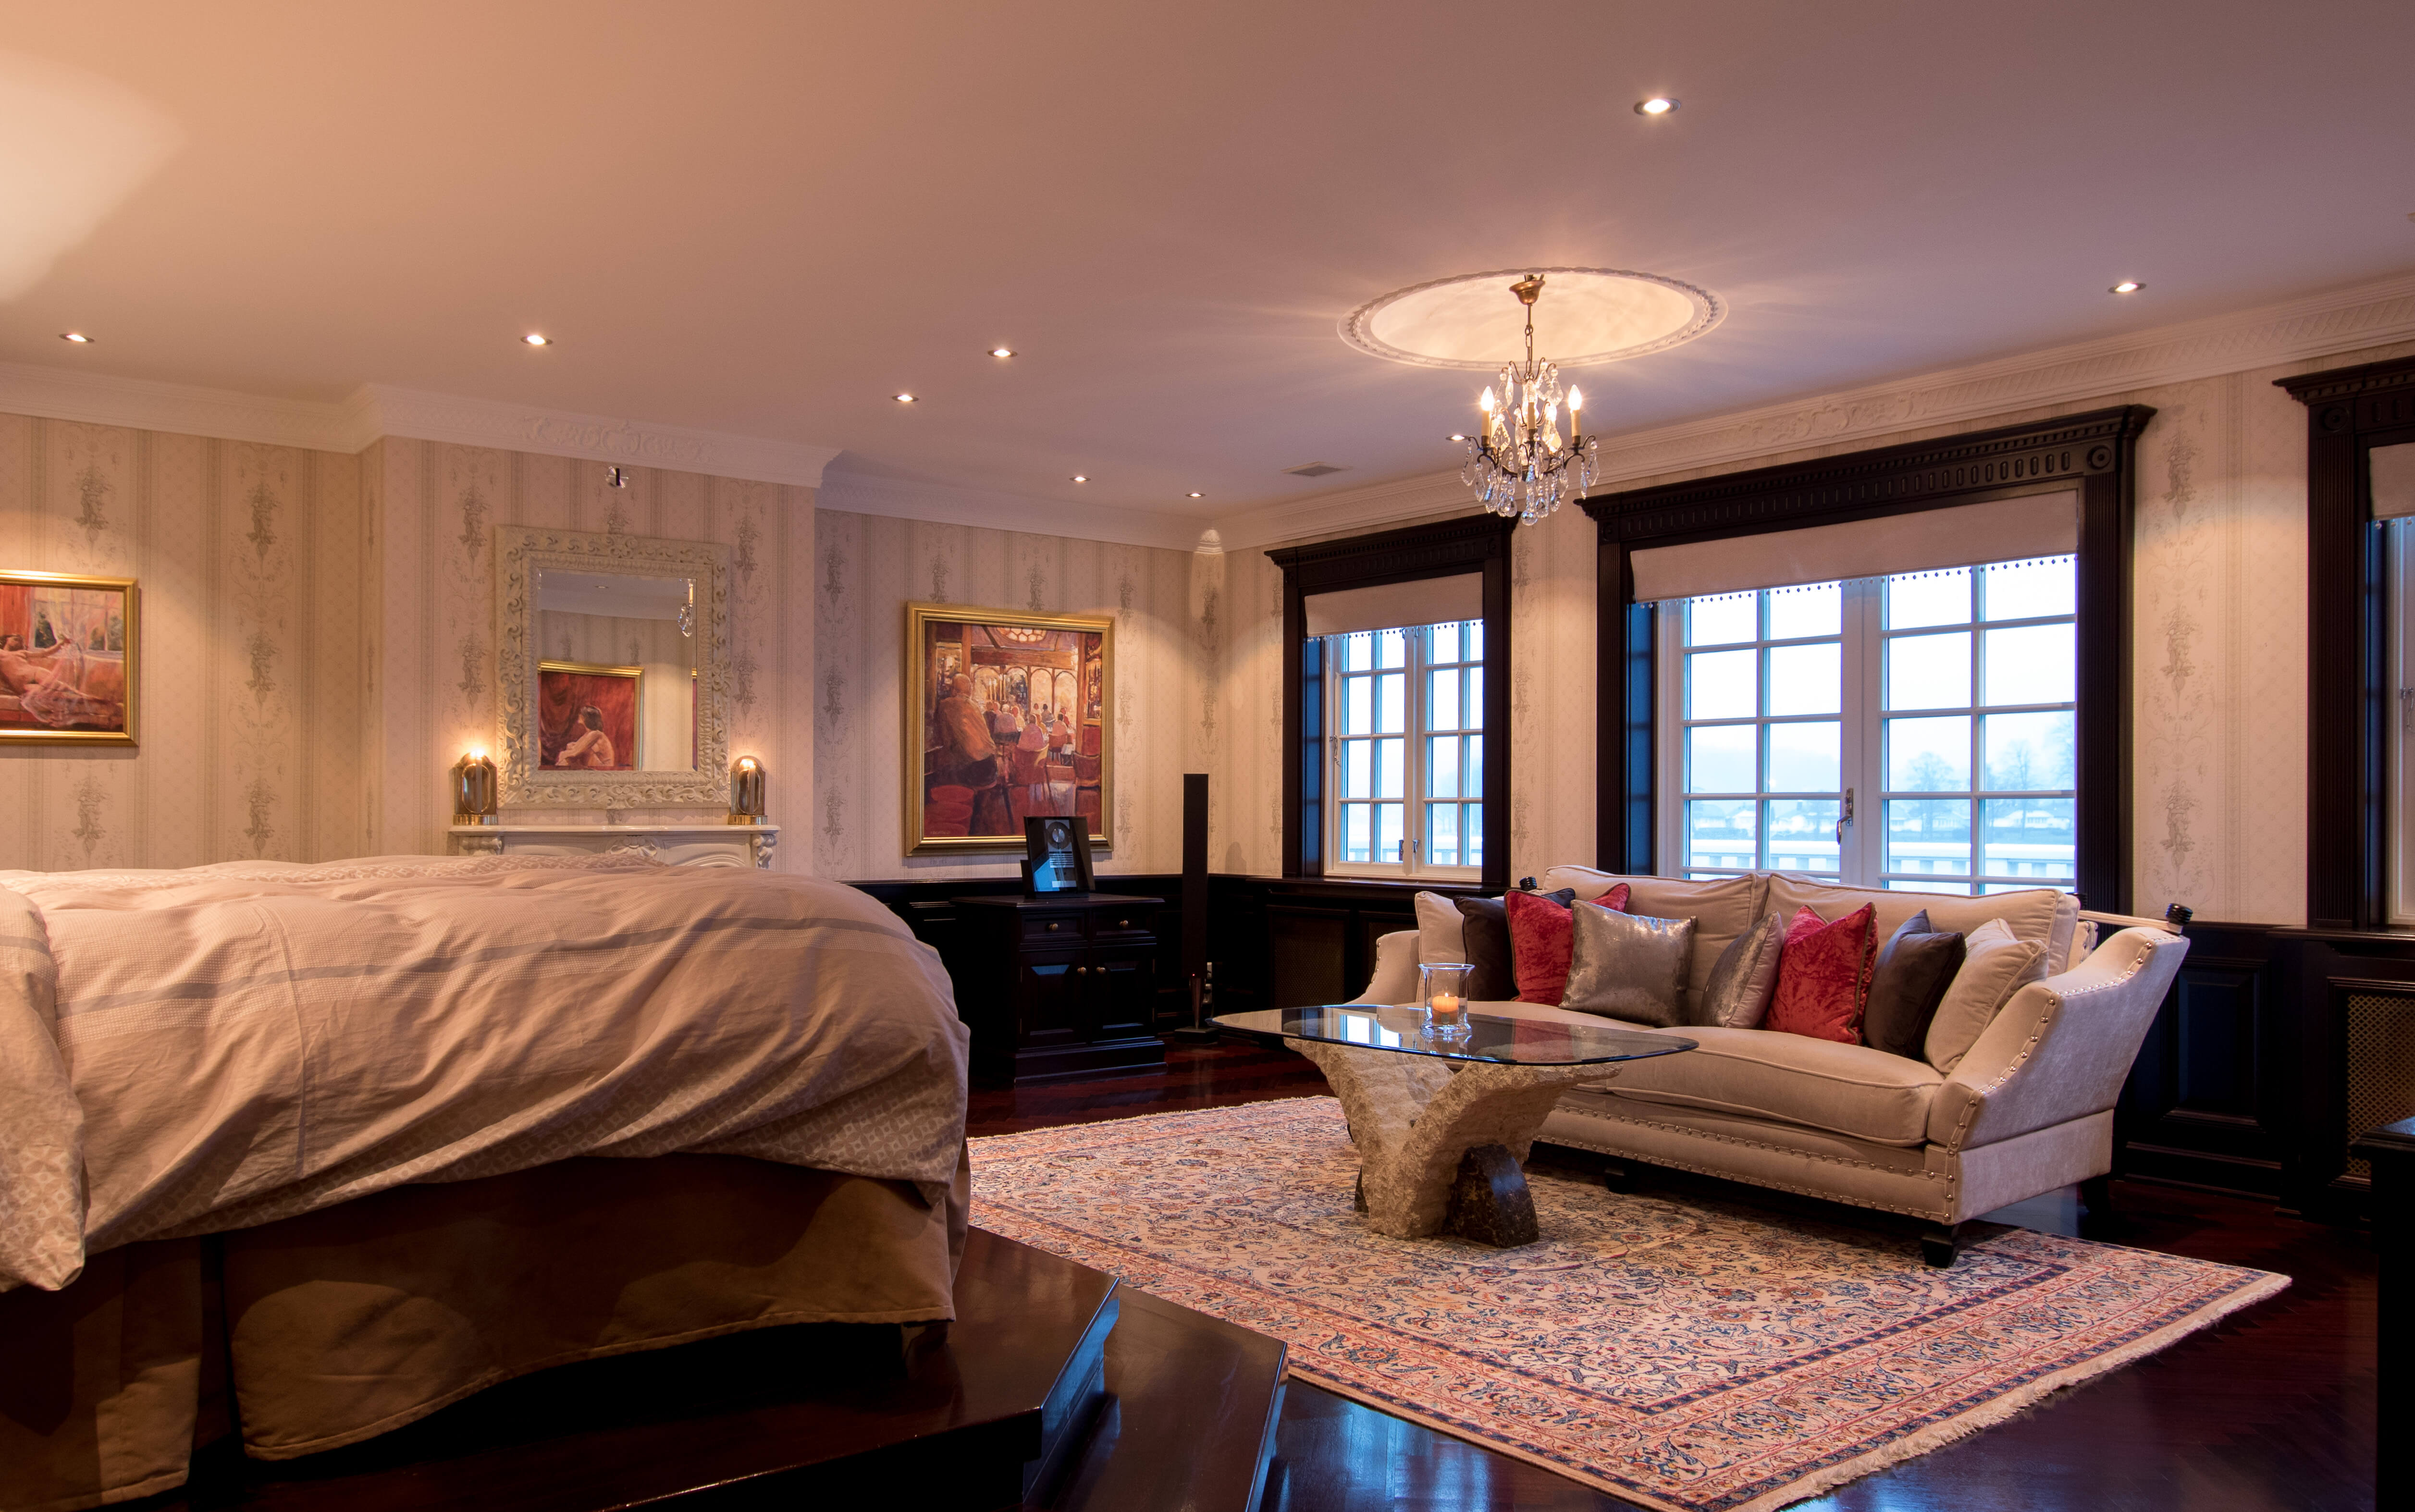 Master bedroom with luxurious qualities.